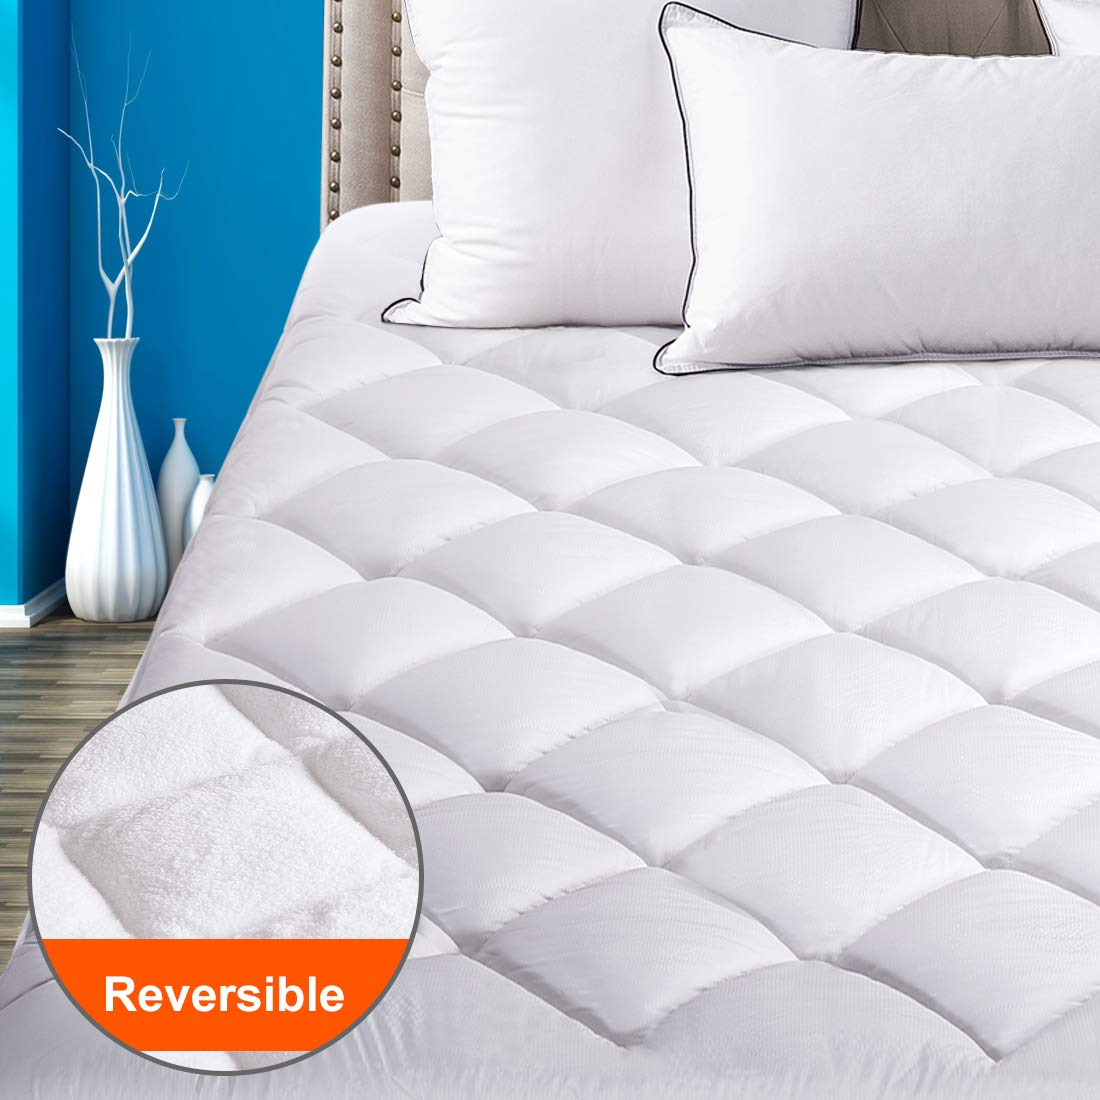 "Reversible Mattress Pad Cover Queen Summer Cooling Mattress topper All-Season Sherpa Quilted Fitted Pillowtop with 8-21""Deep Pocket"